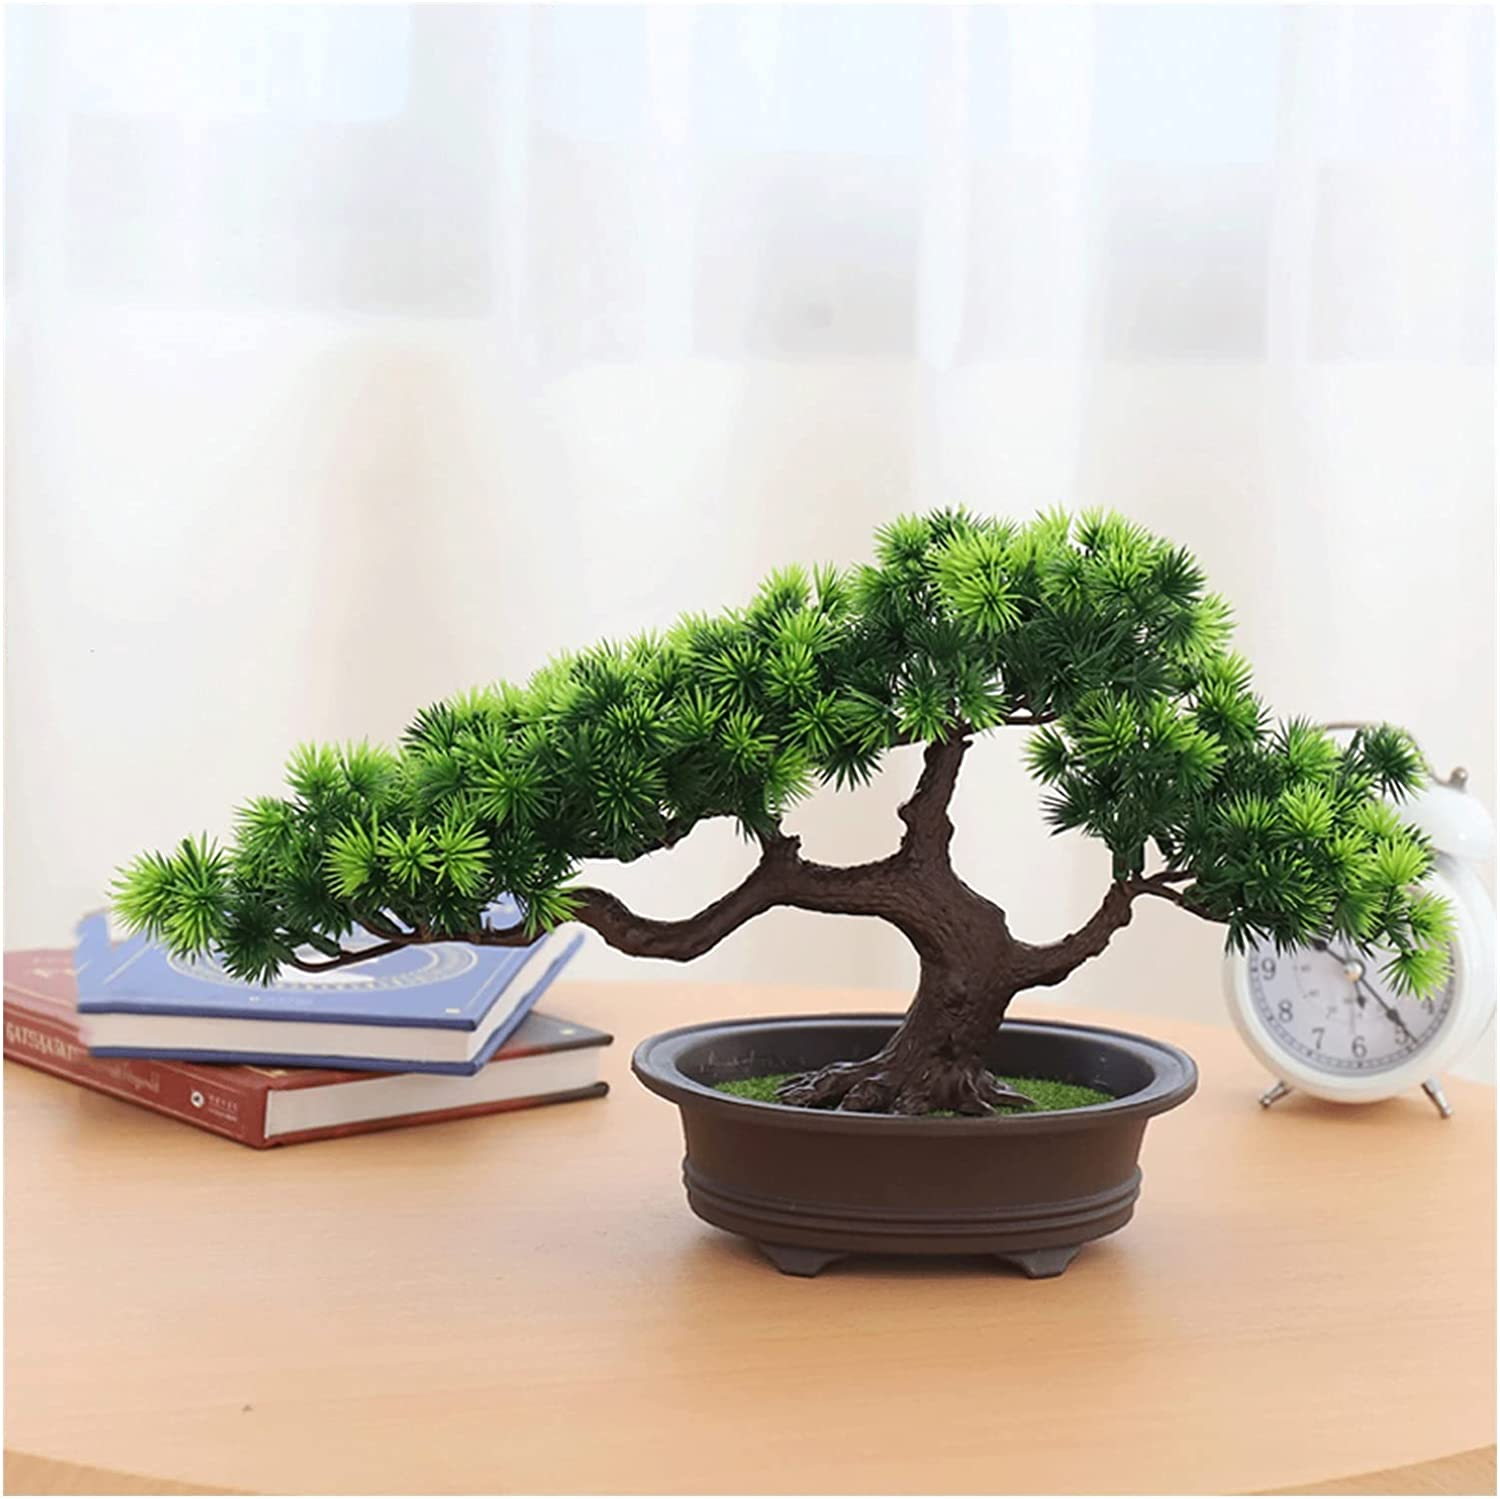 New sales jbshop Artificial House Plants Bonsai In Pine 7 Tree Mail order cheap